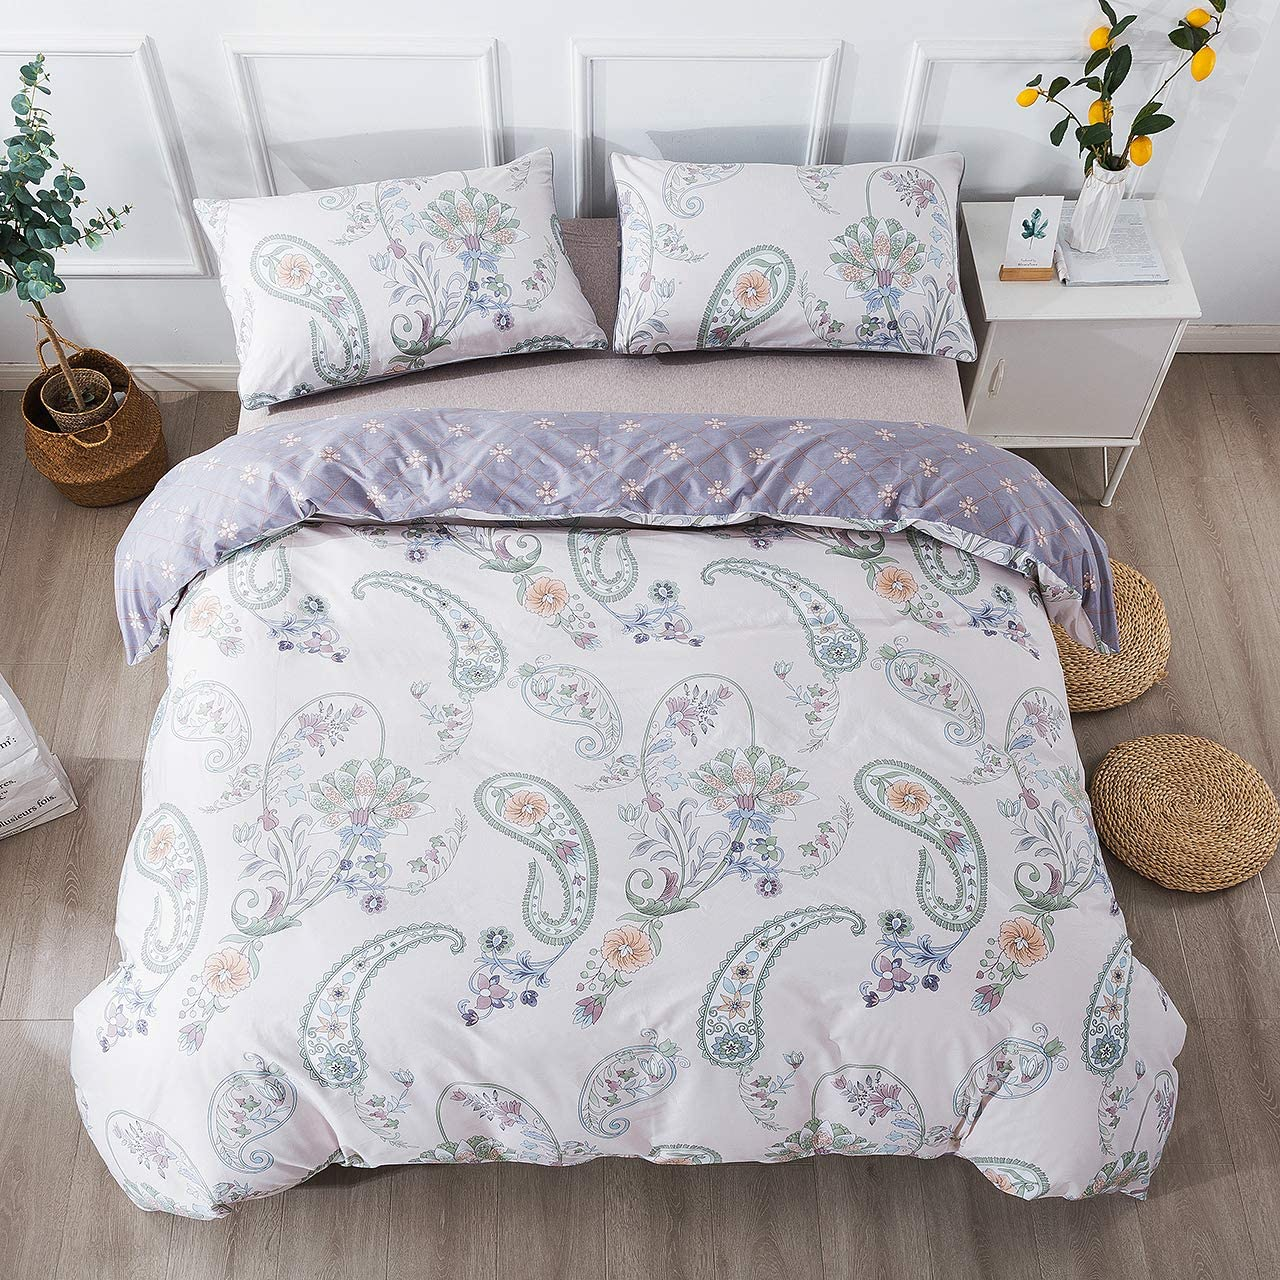 FADFAY Paisley Duvet Cover Set Beige Purple Reversible Paisley Floral Bedding 100% Cotton Soft Bedding Set with Hidden Zipper Closure 3 Pieces, 1Duvet Cover & 2Pillowcases, King/California King Size